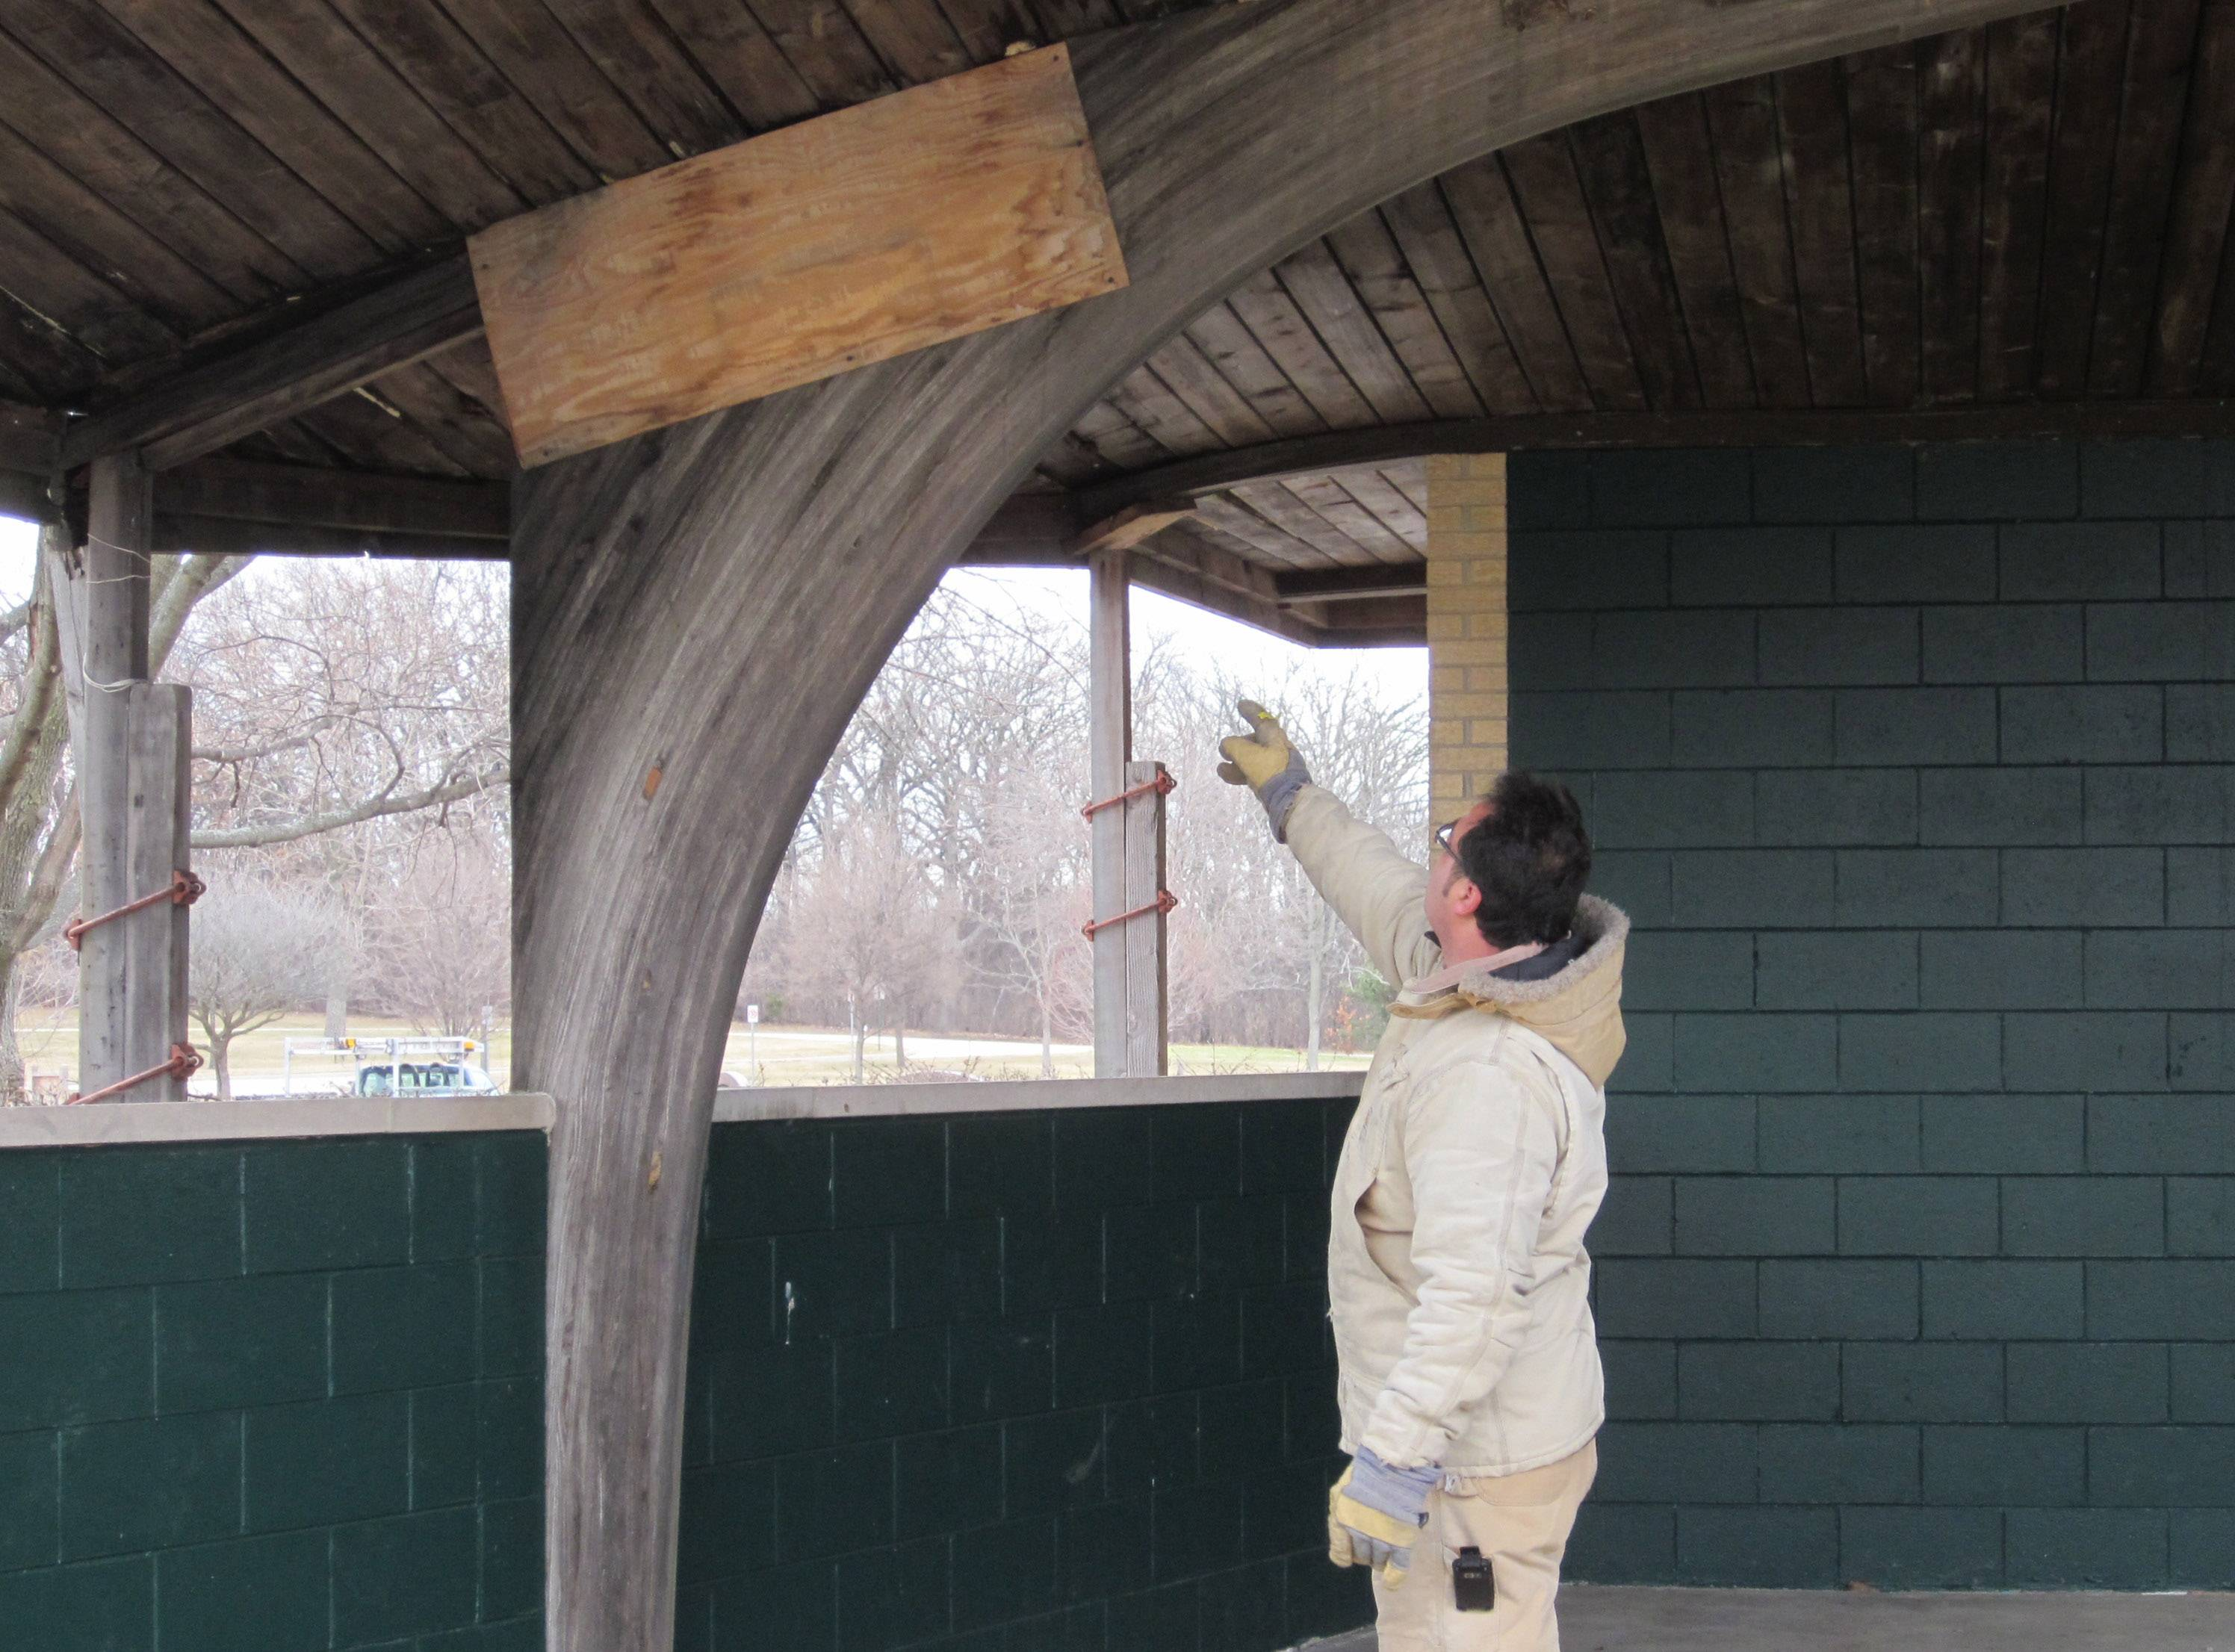 The band shell at Butler Lake Park in Libertyville has fallen into disrepair and will be torn down.